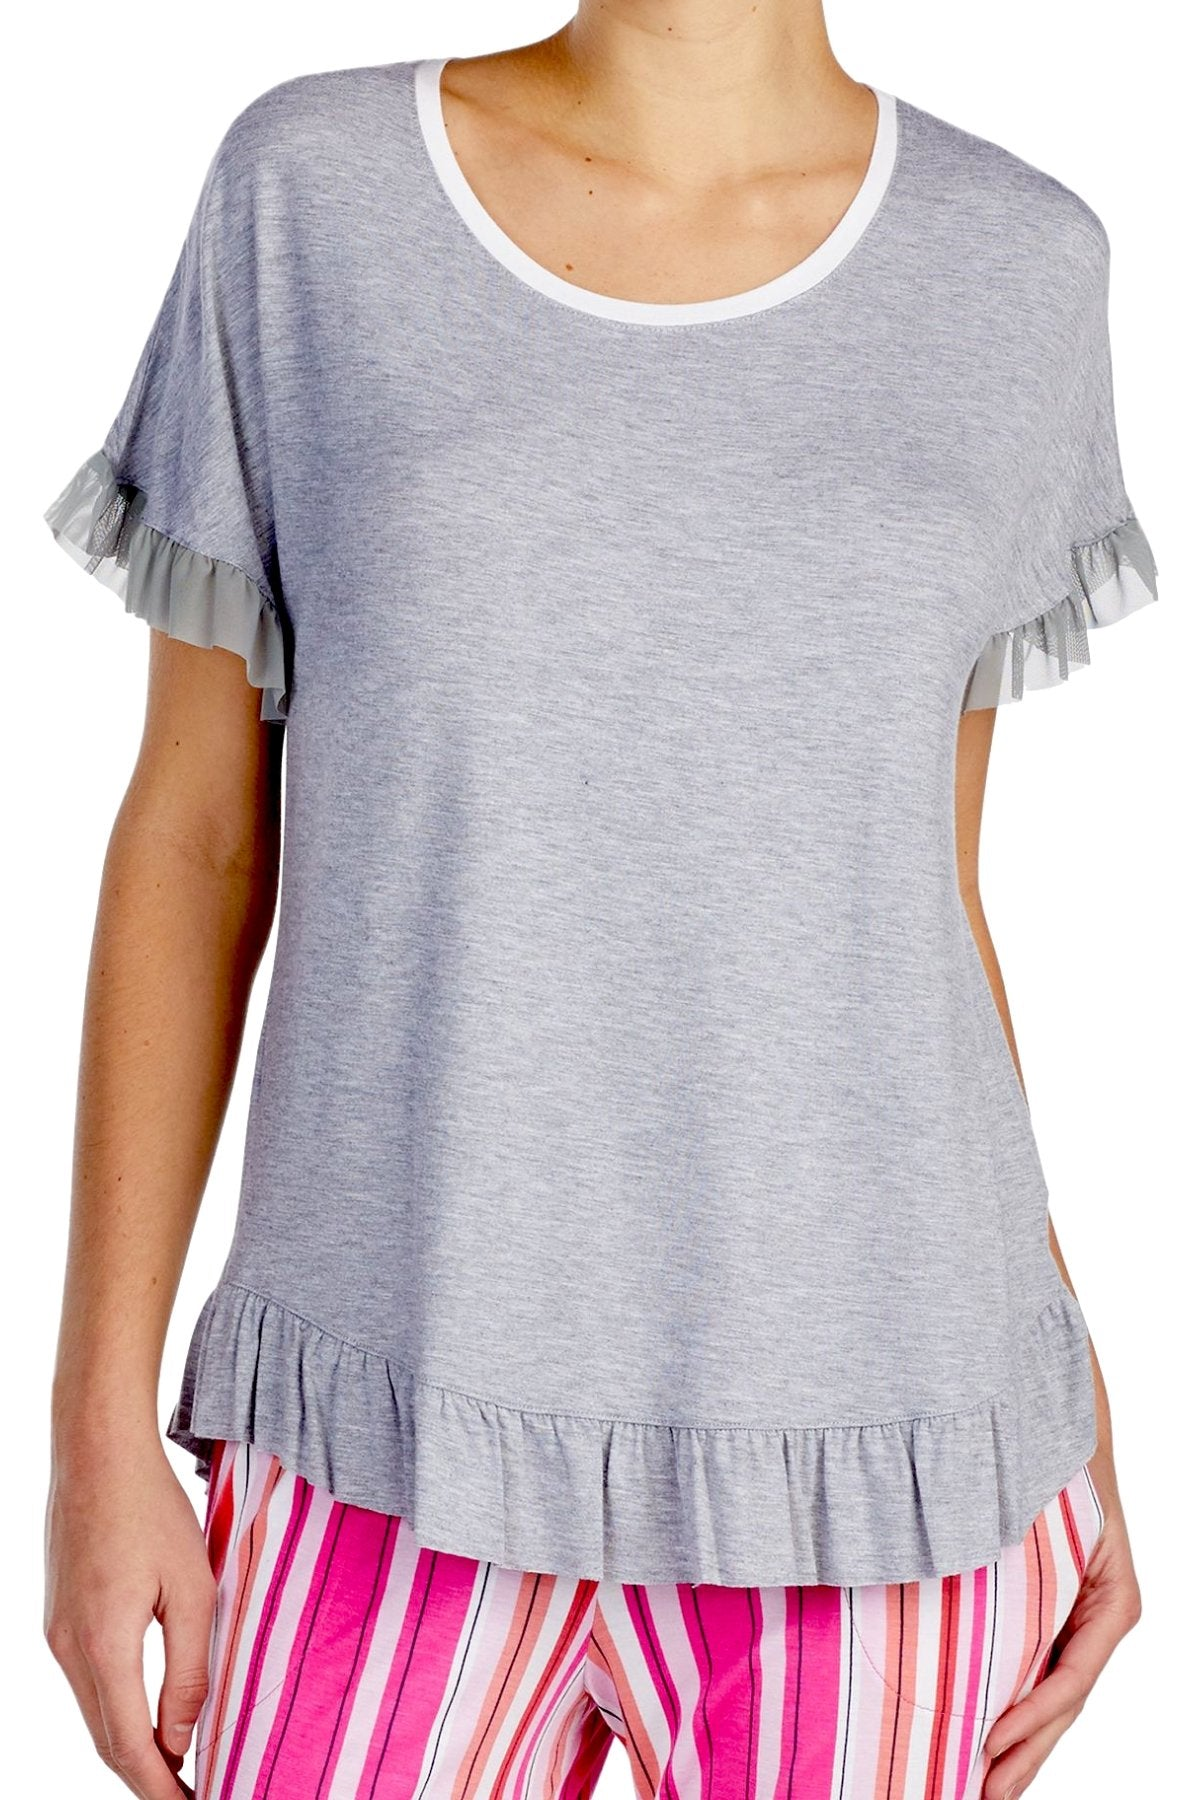 Layla Heather-Grey Ruffled-Trim Lounge Top